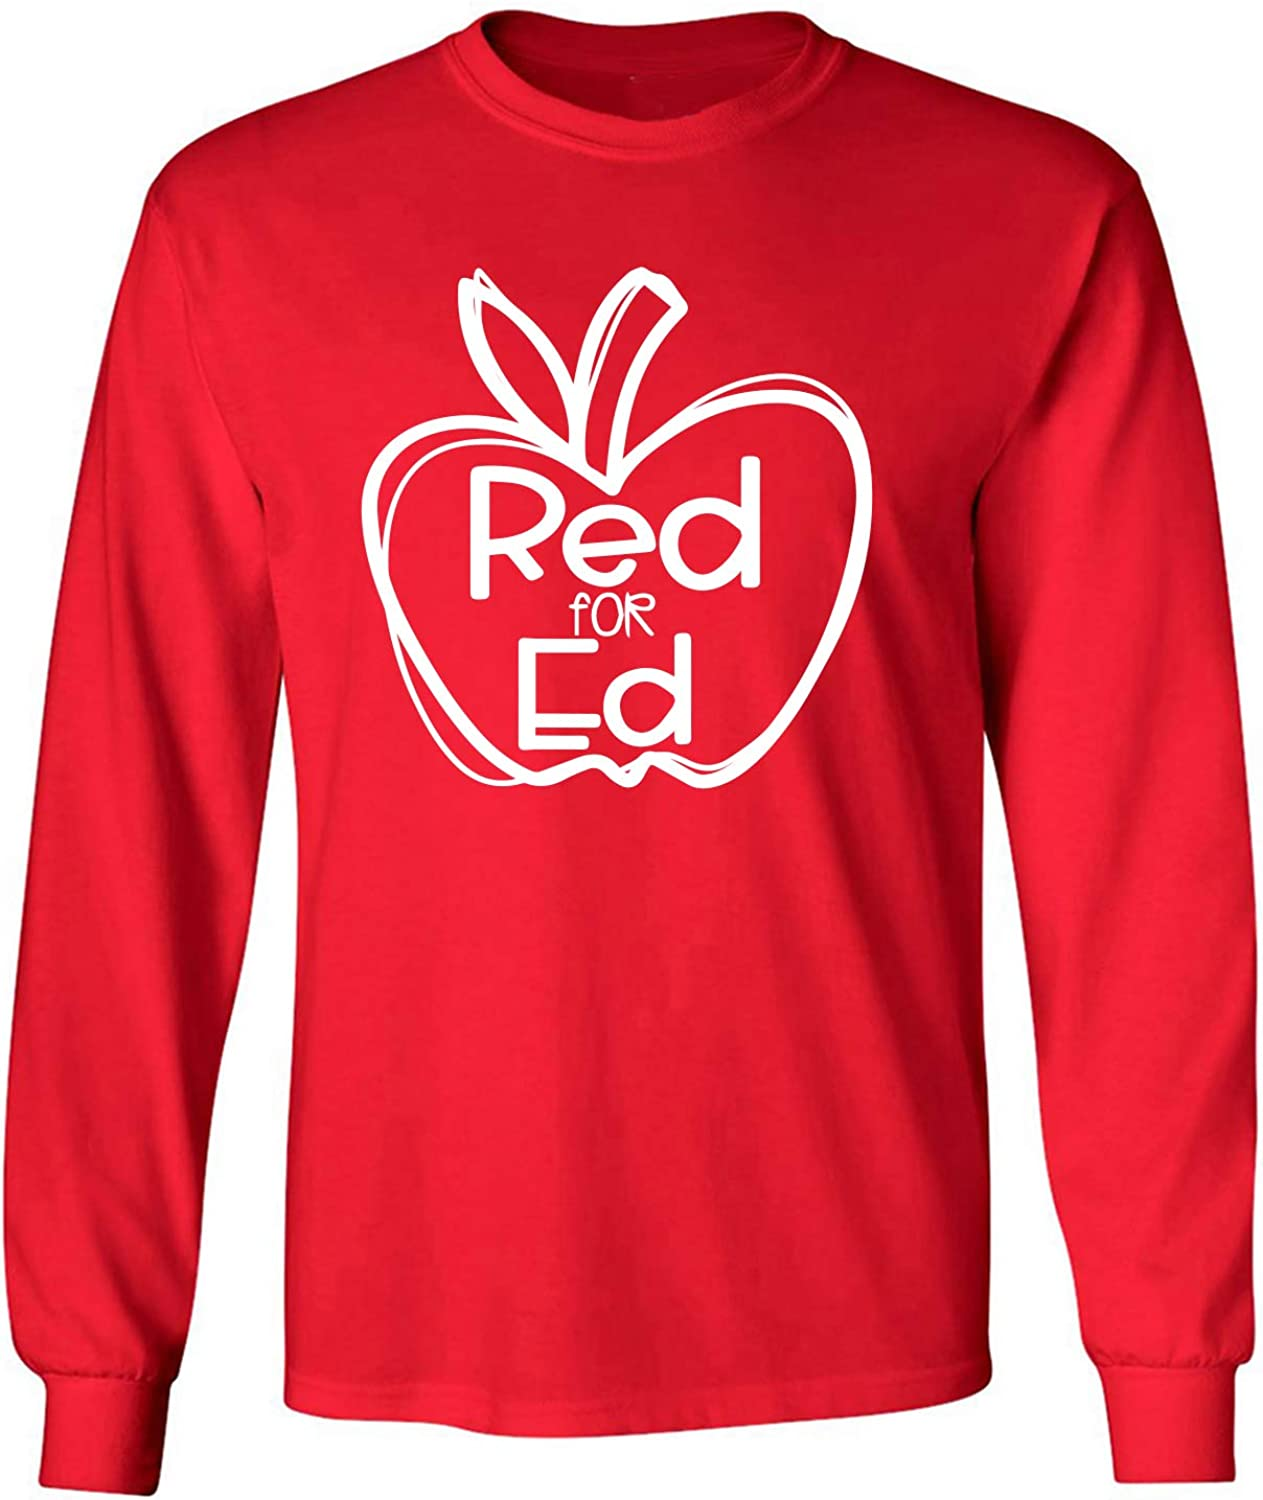 Red for Ed Adult Long Sleeve T-Shirt